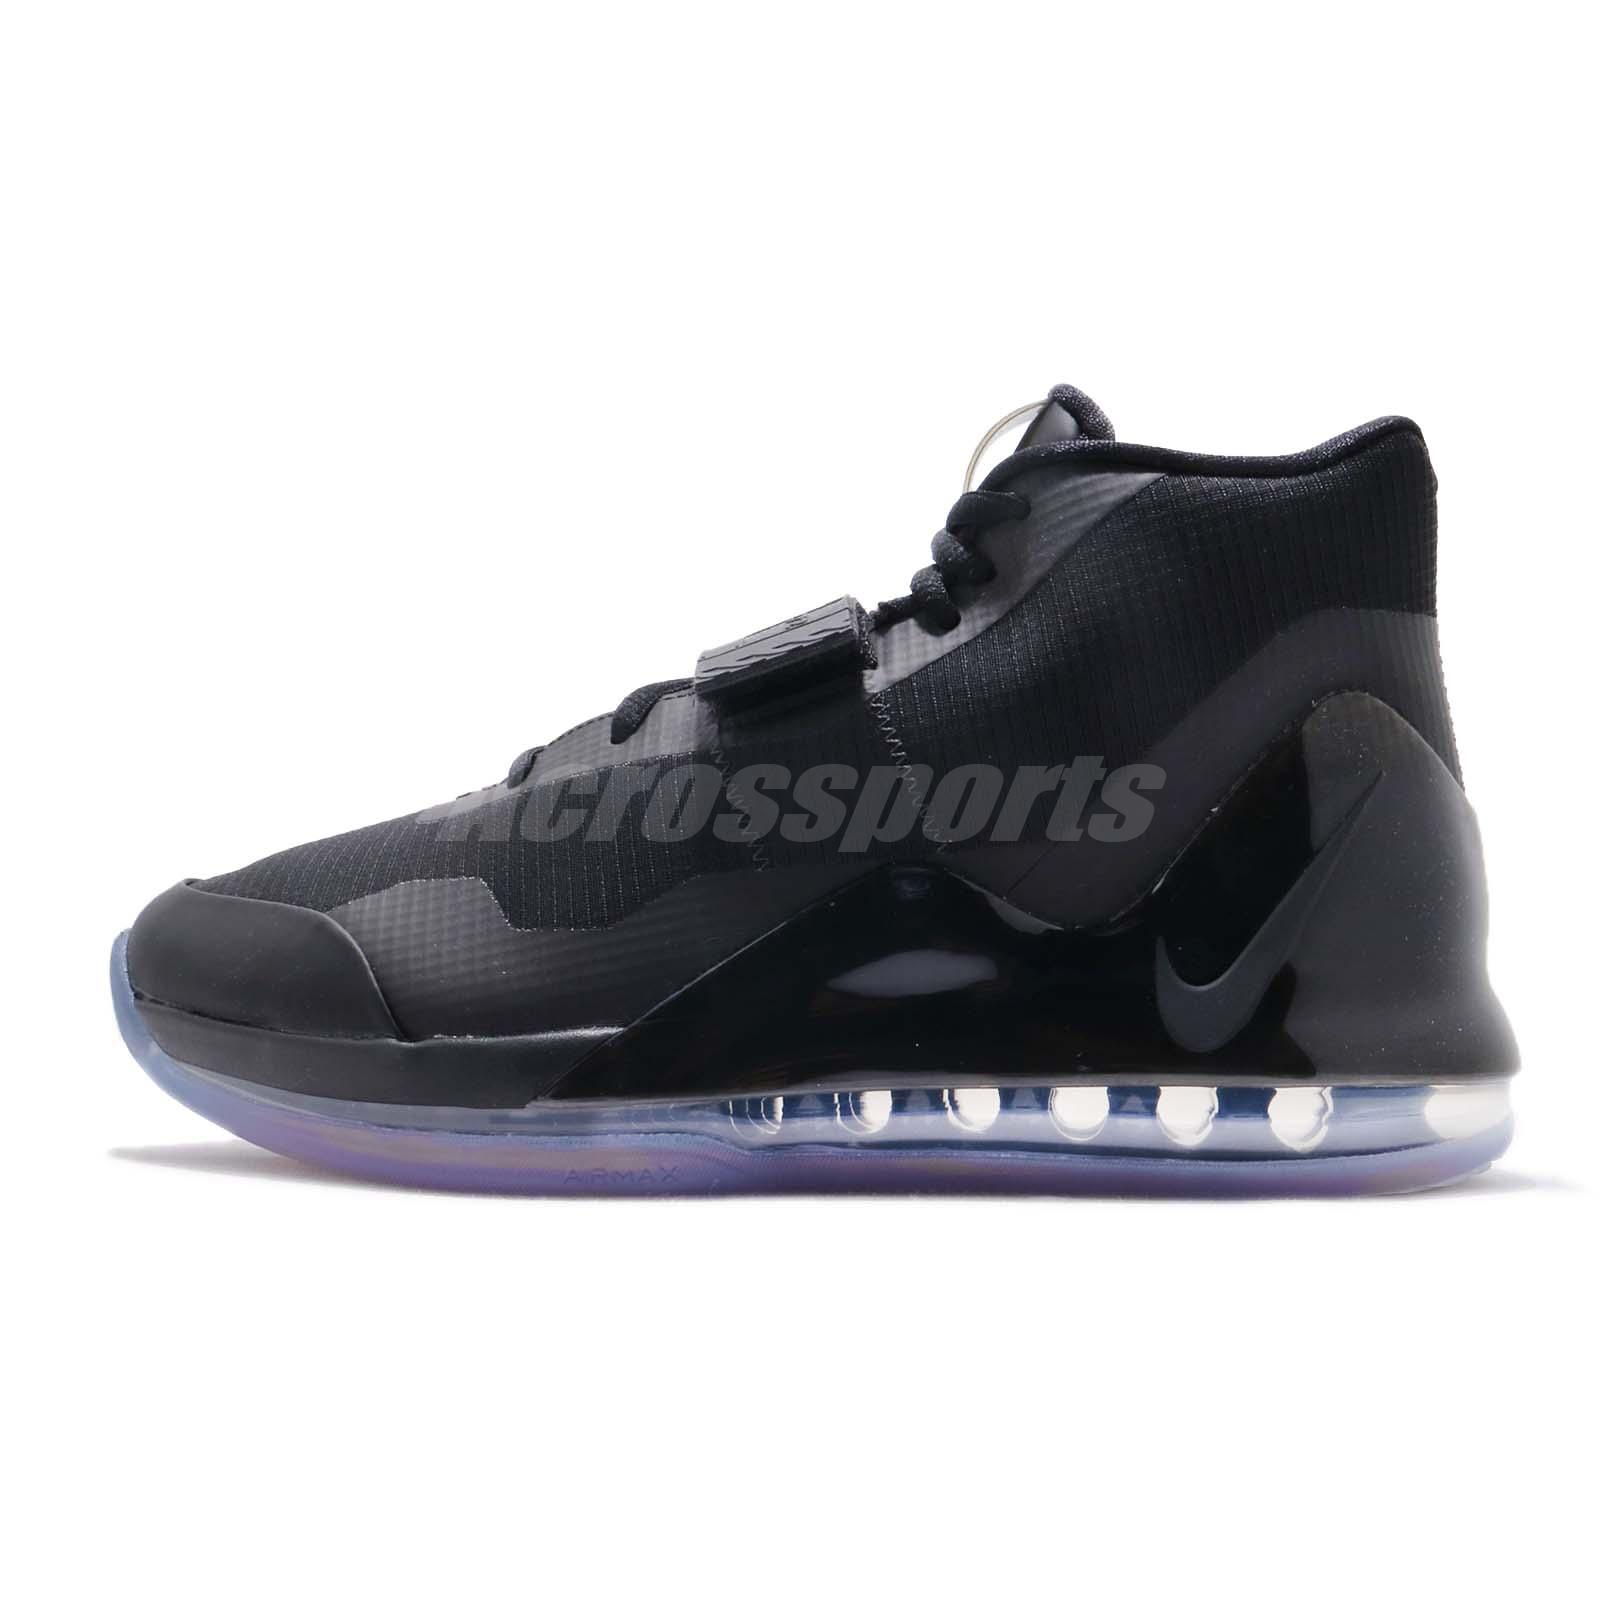 Athletic Shoes Fashion Style Nike Air Force Max Ep Black Anthracite Men Basketball Shoes Sneakers Ar0975-003